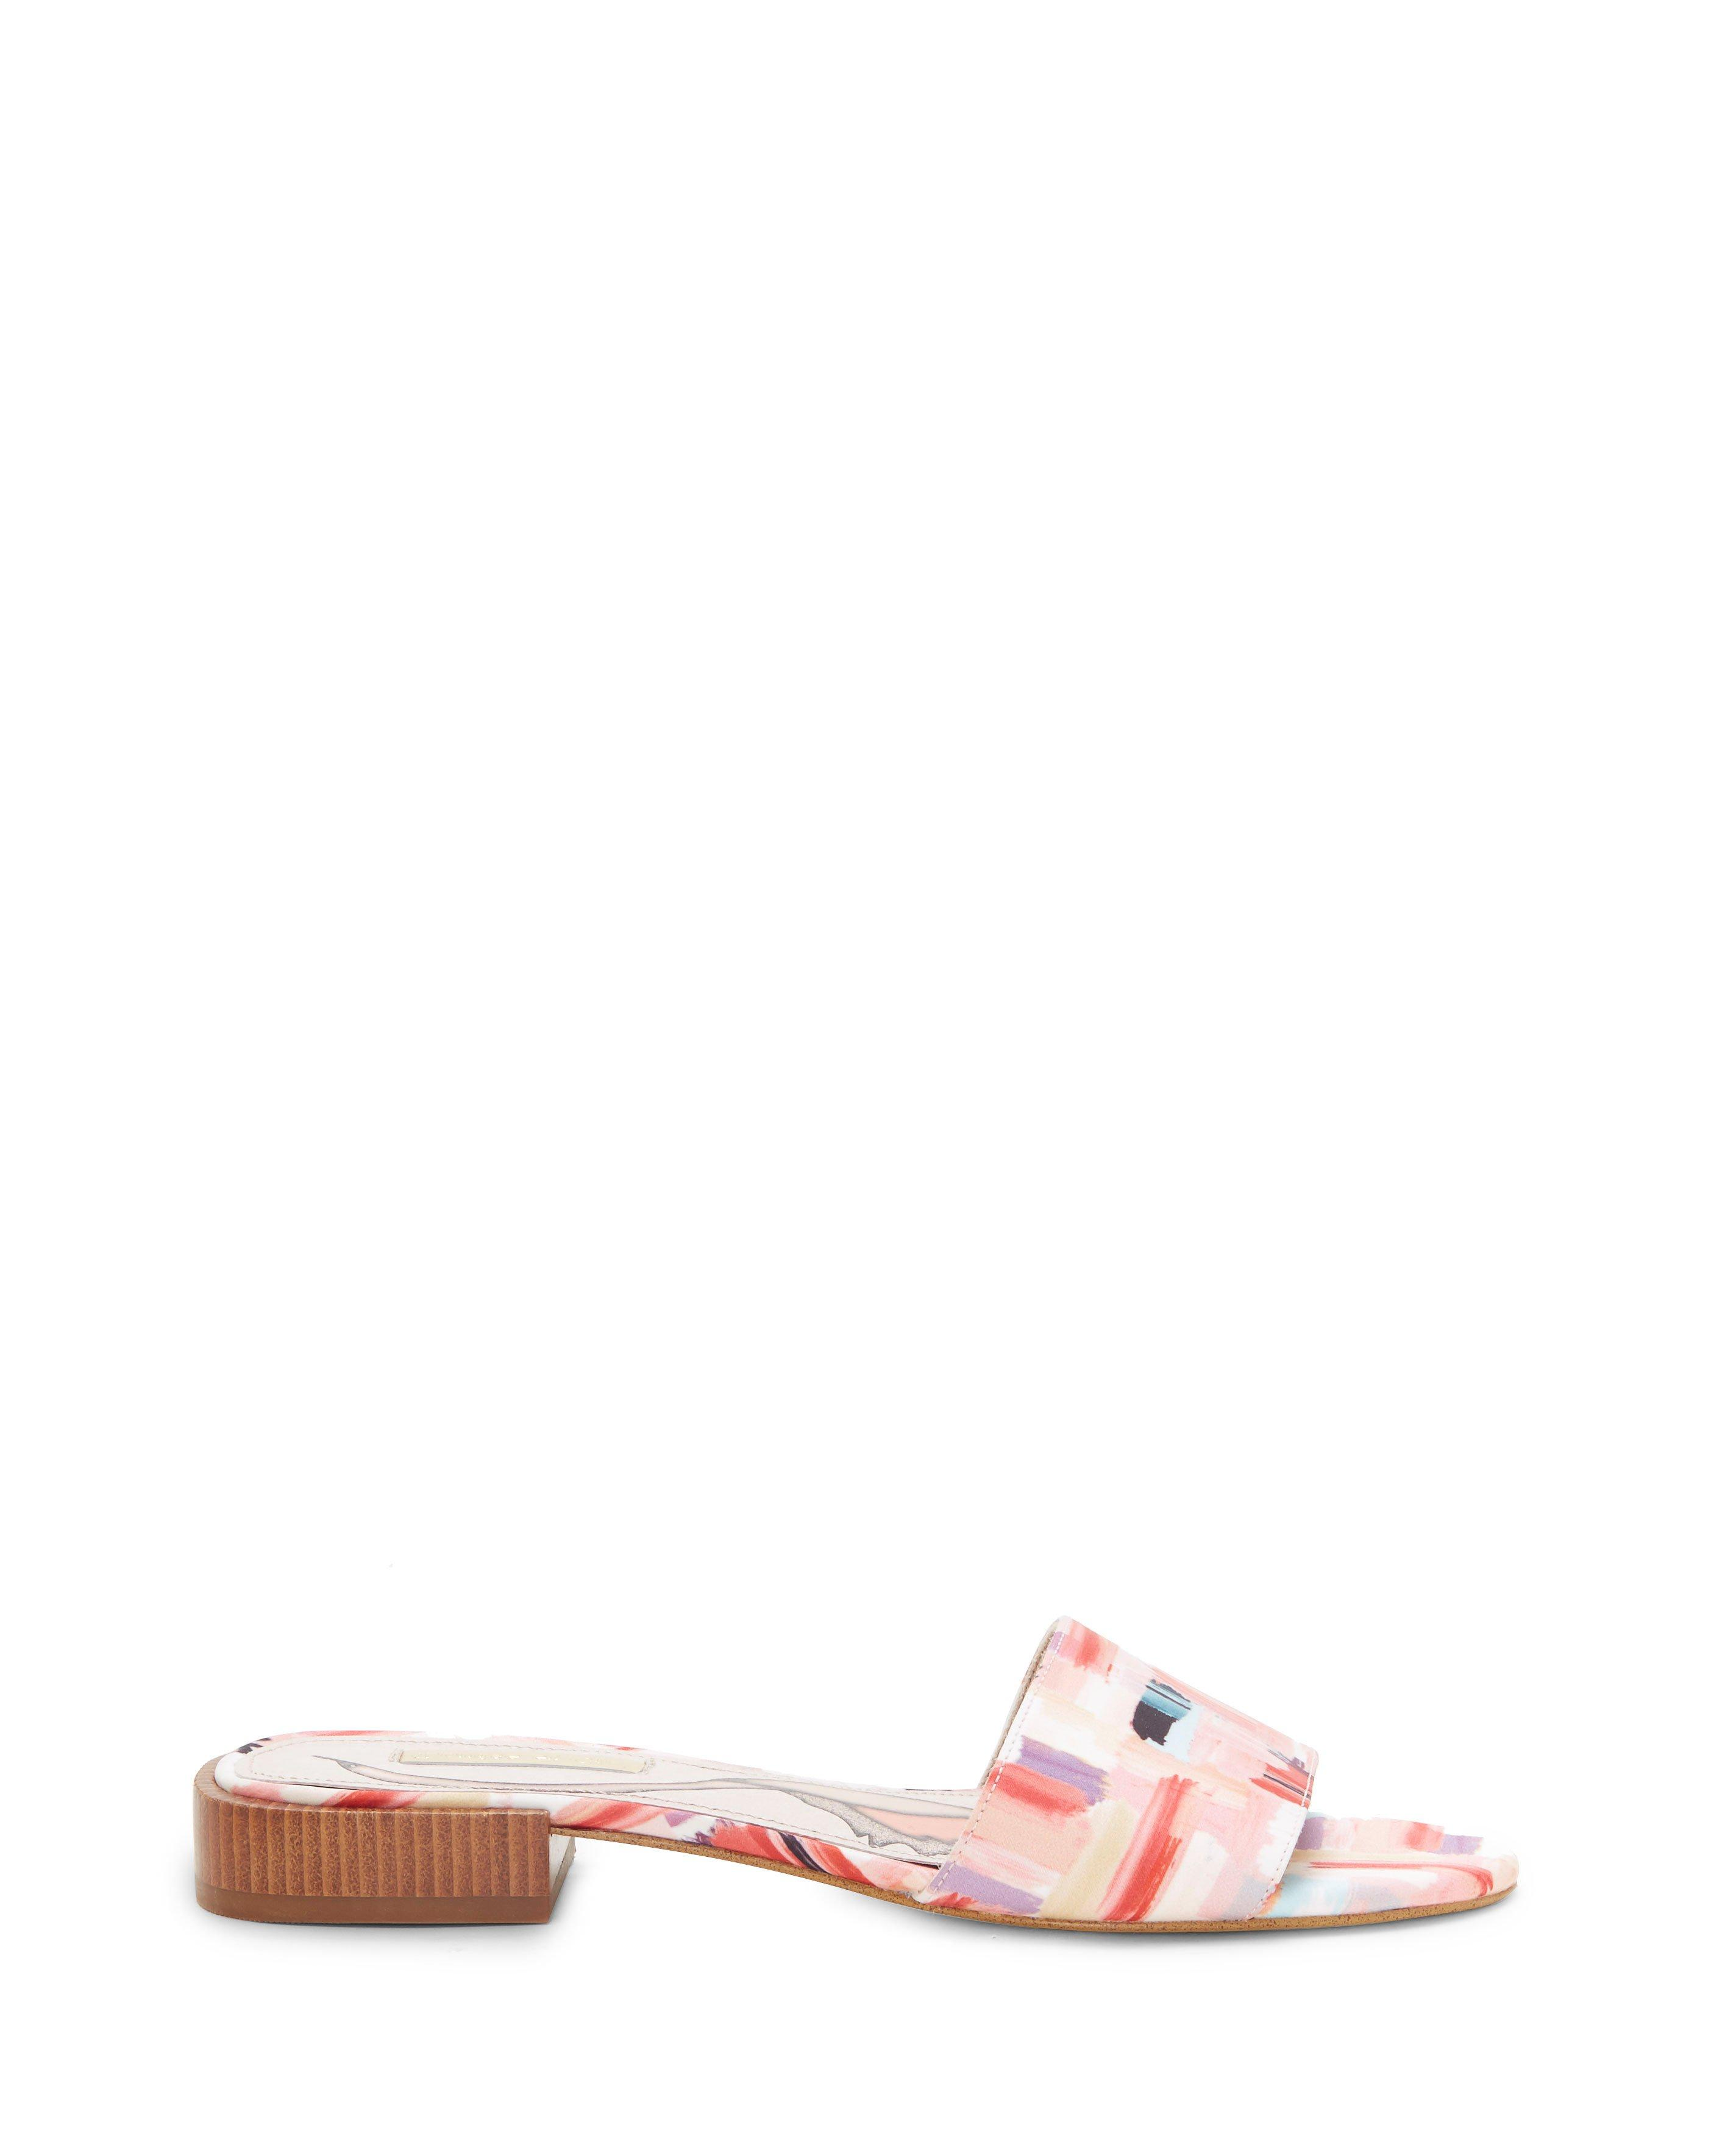 Discussion on this topic: Womens Louise Et Cie Aydia Slide Sandal, womens-louise-et-cie-aydia-slide-sandal/